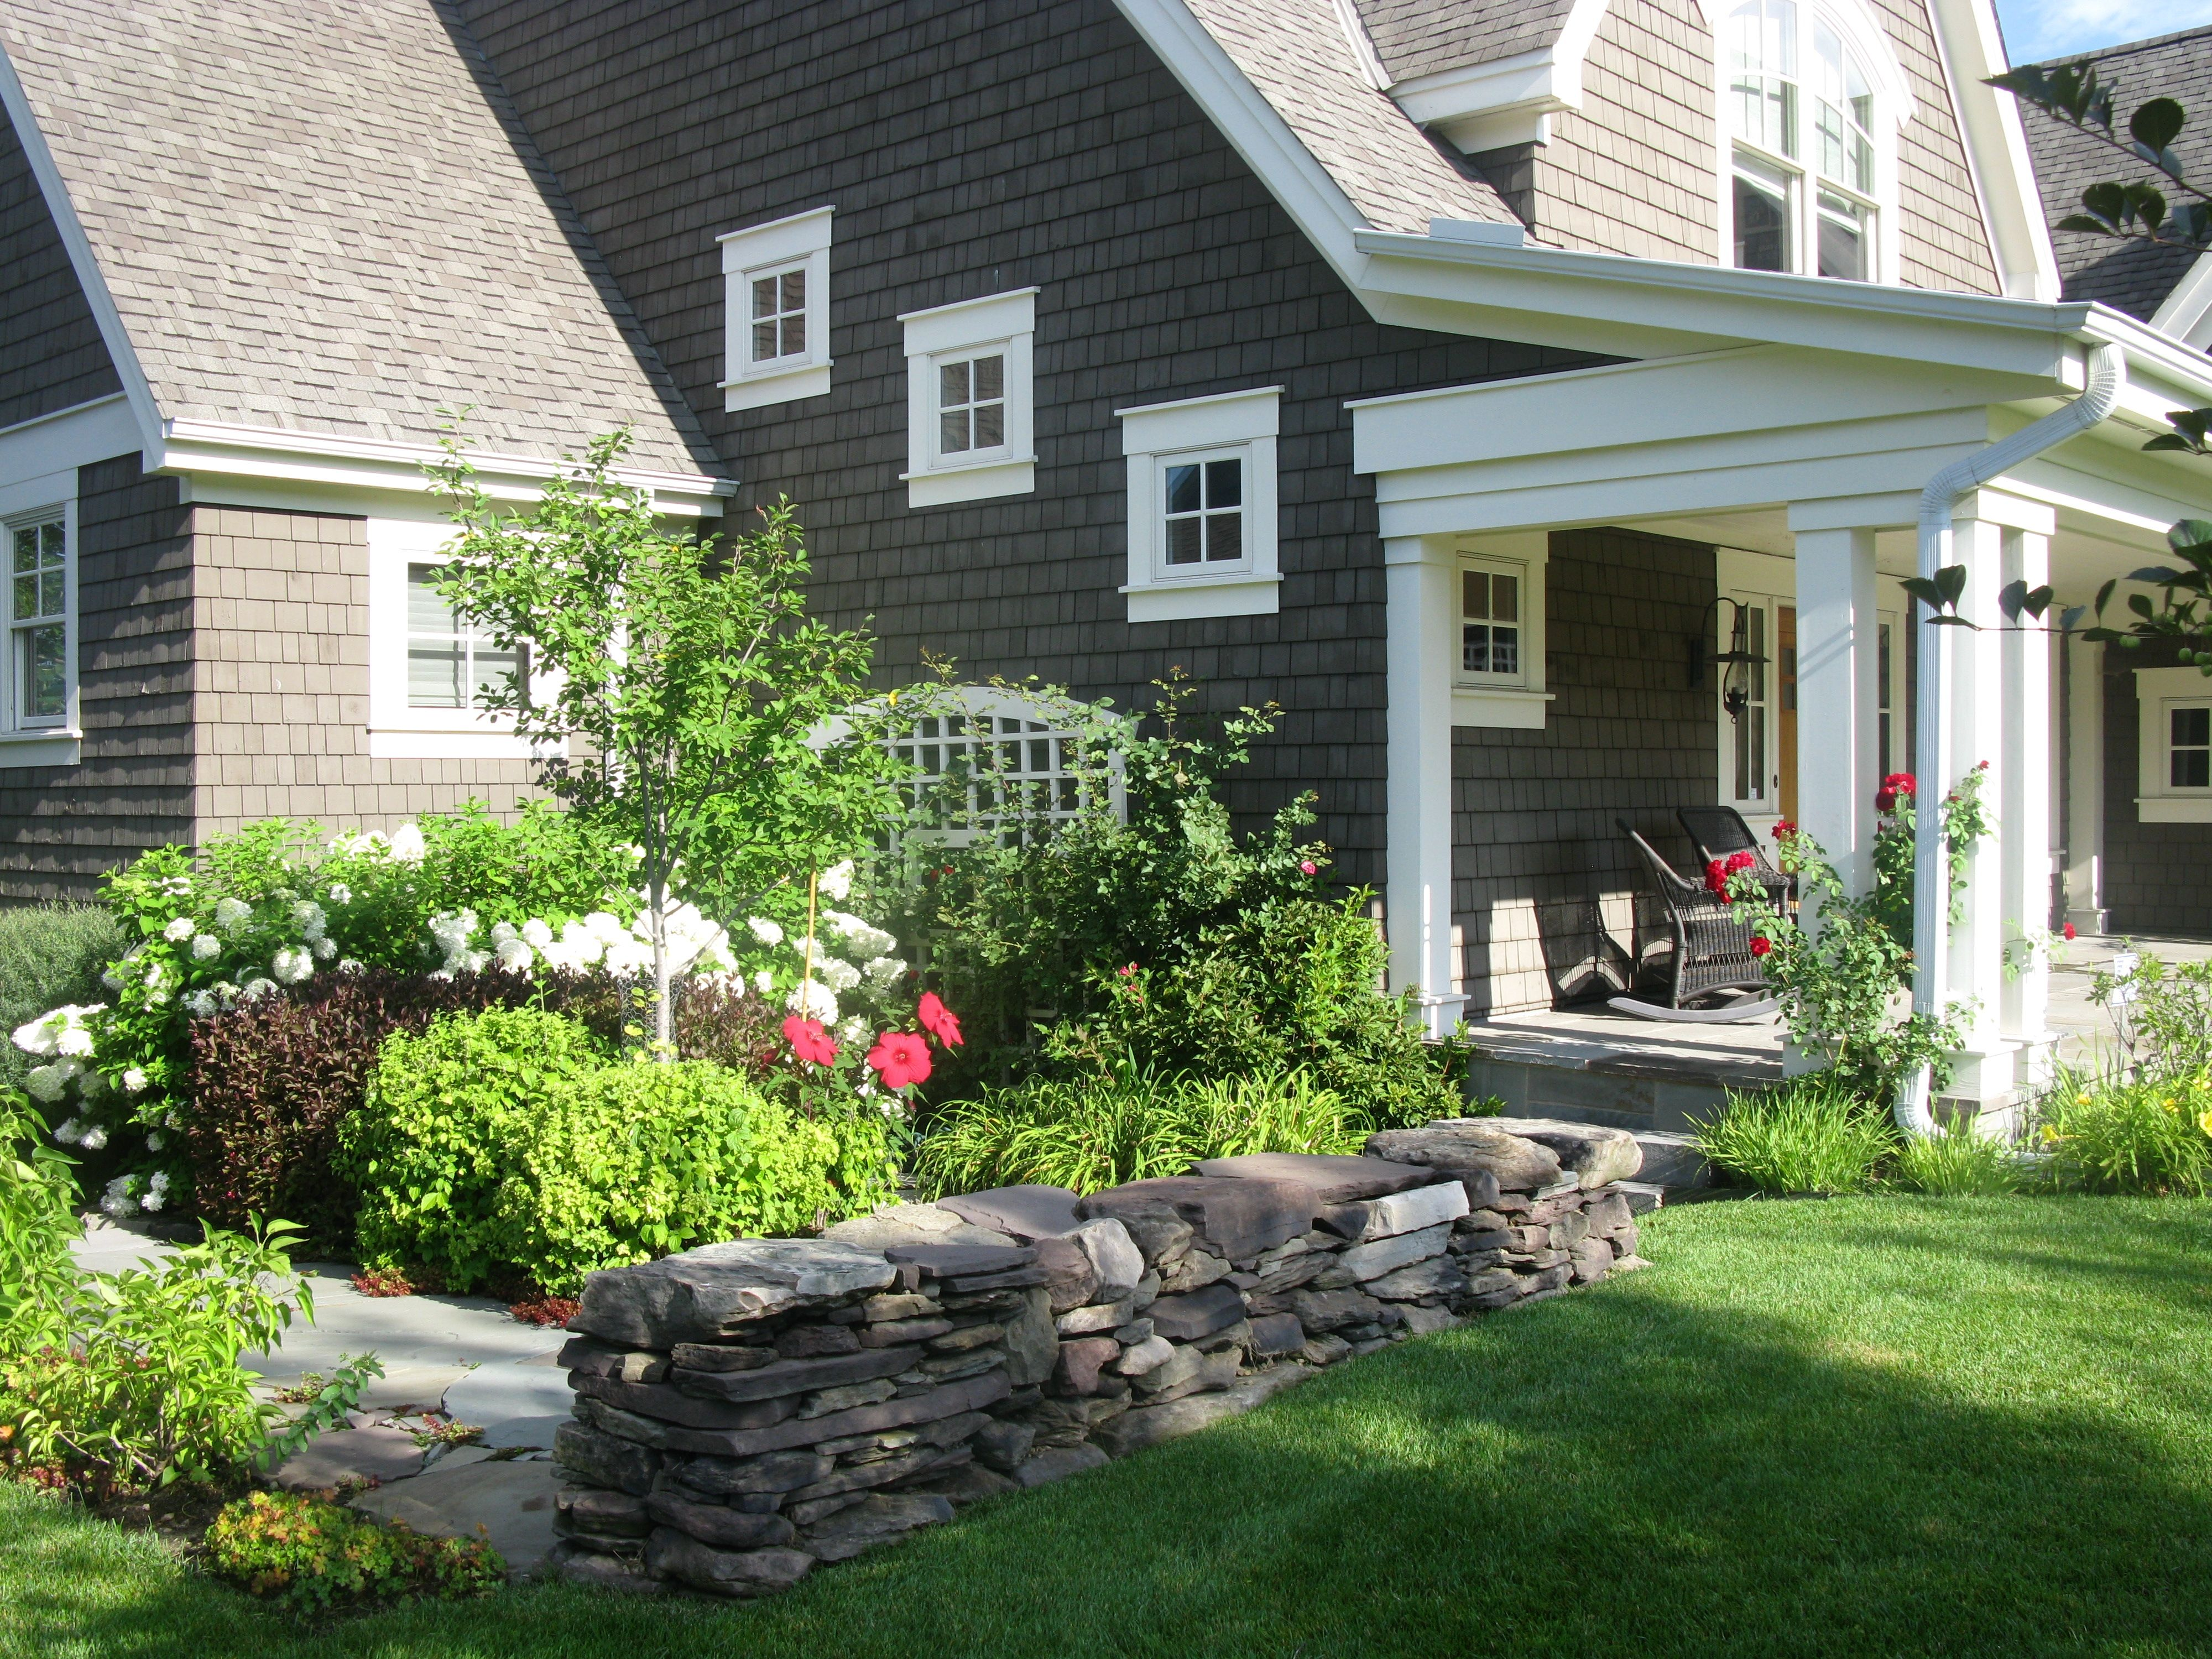 Landscaping Ideas For Front Of House With Porch To Creating And Maintaining Your Home And